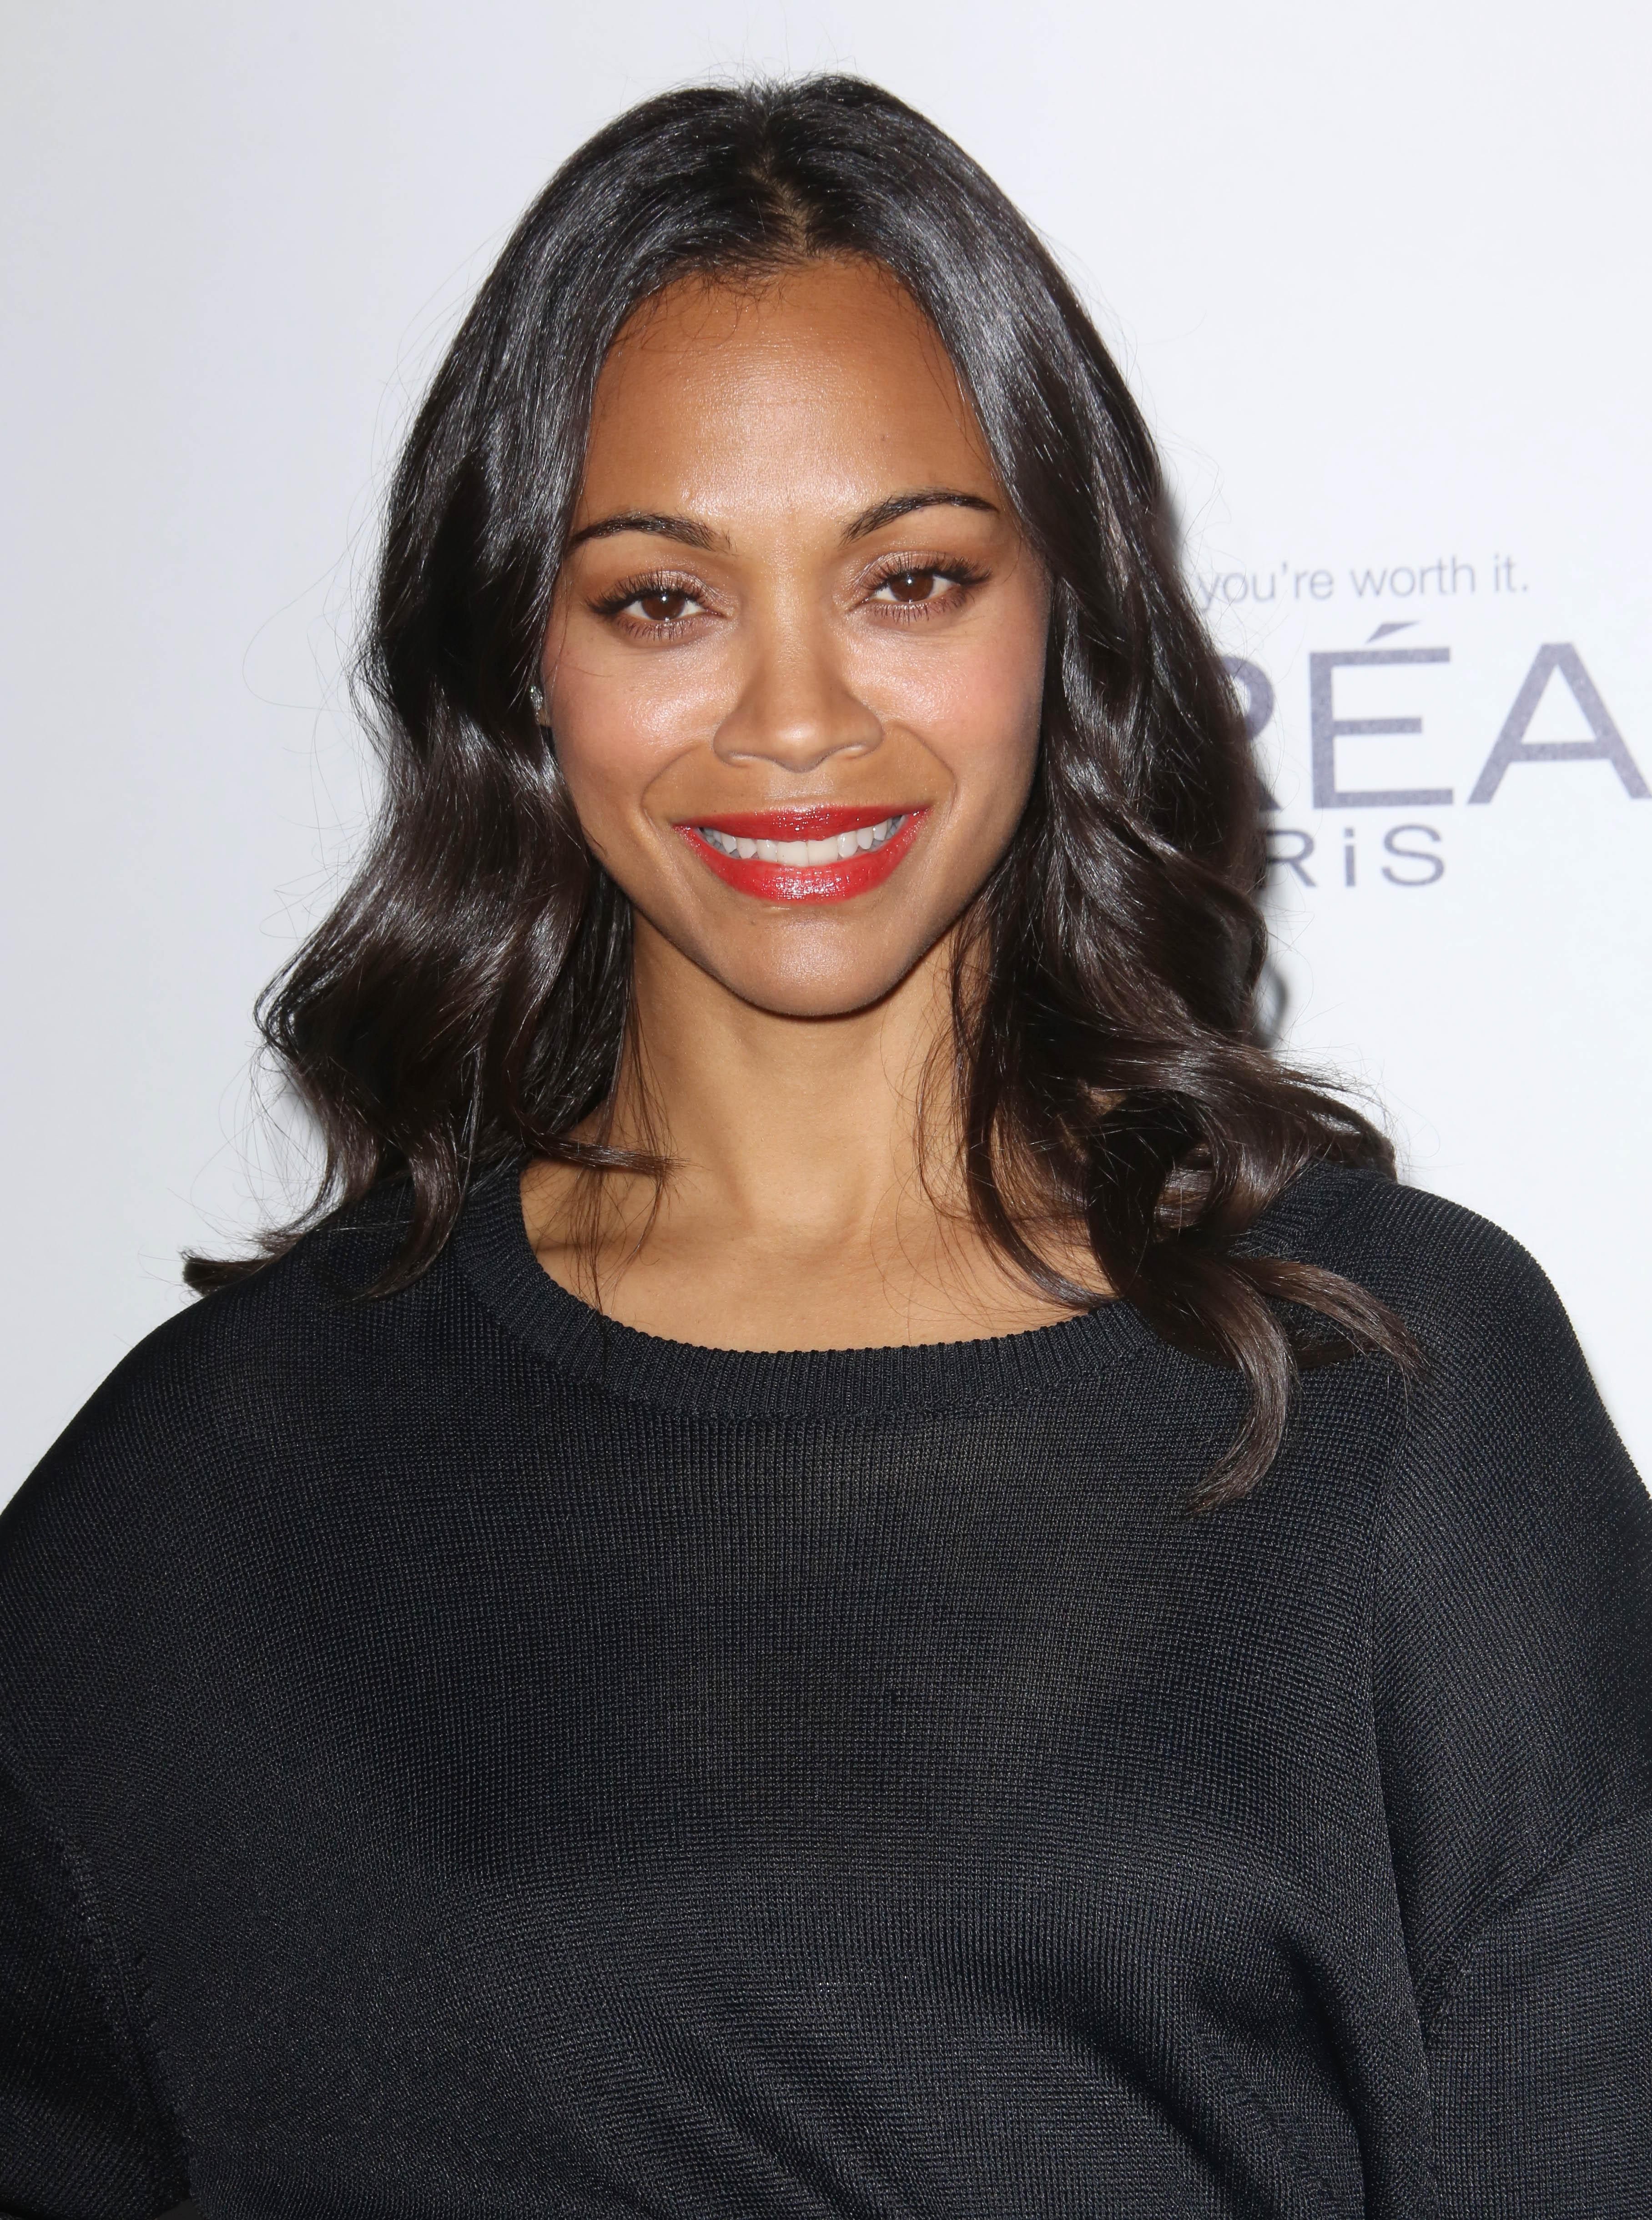 Guardians Interview: Zoe Saldana on Going Green and the